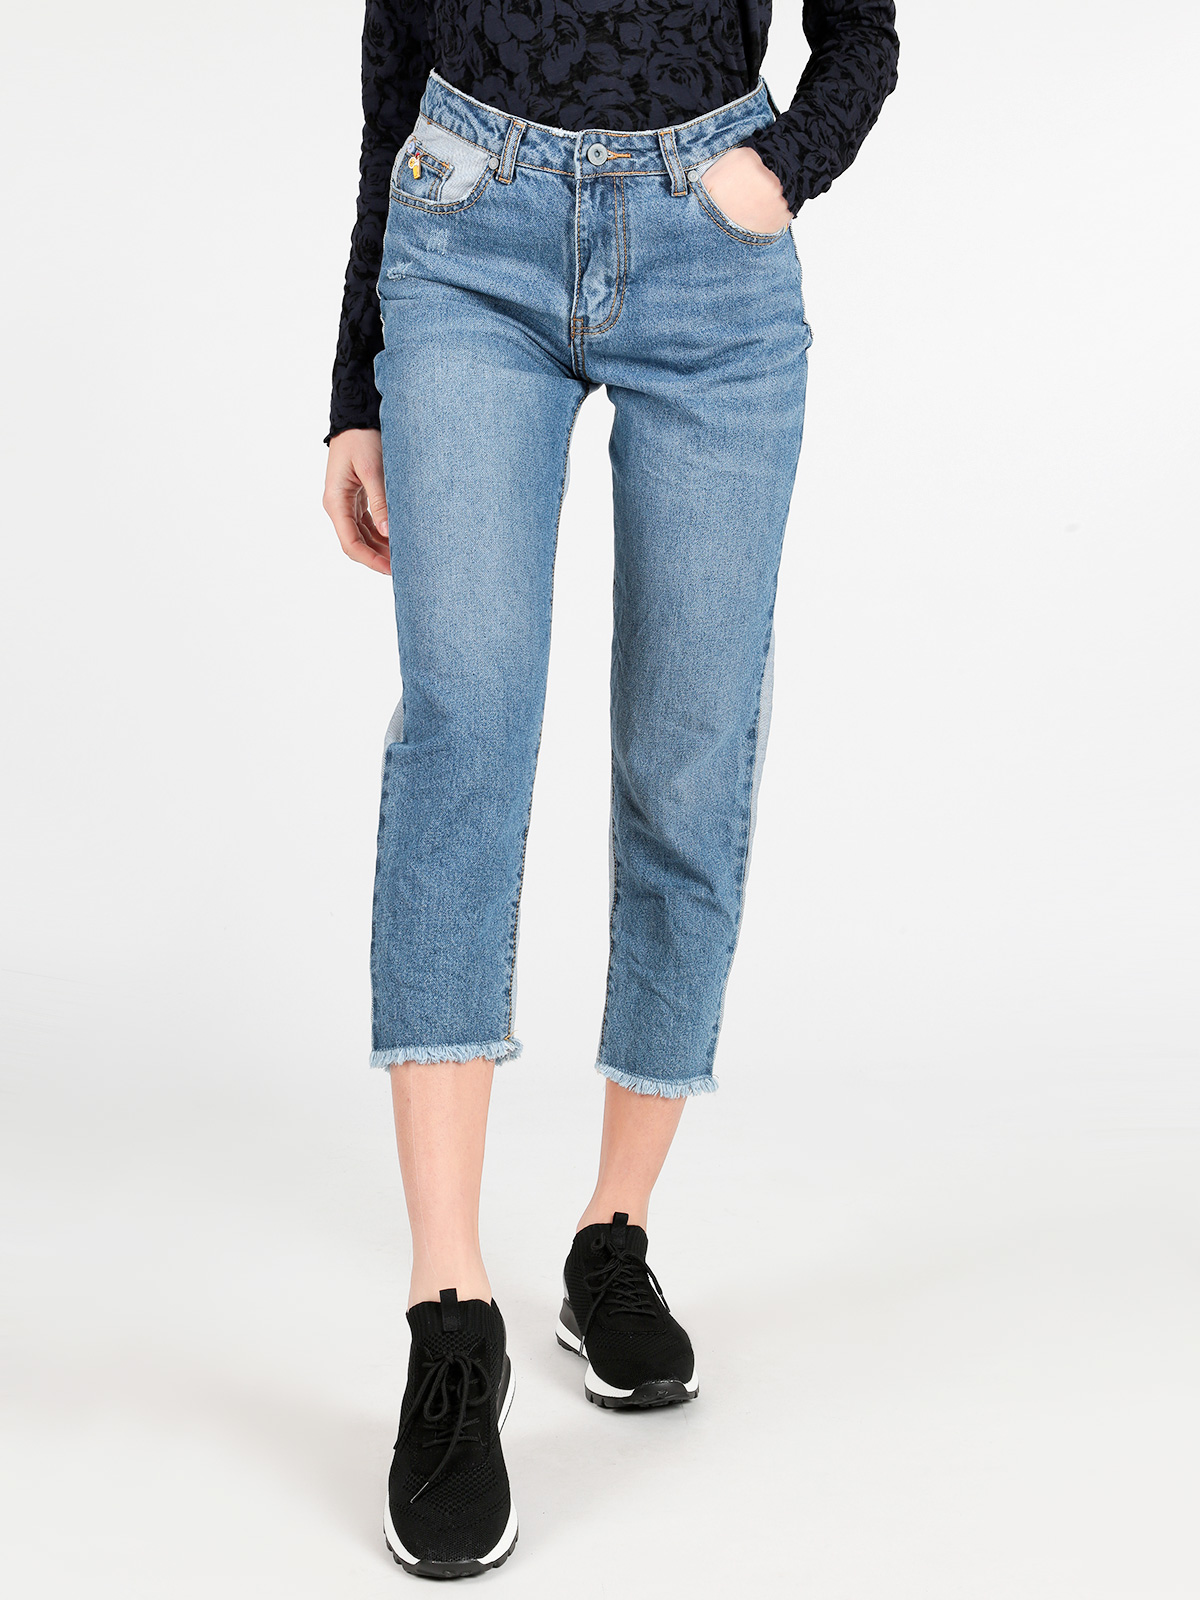 Boyfriend Jeans Two-color